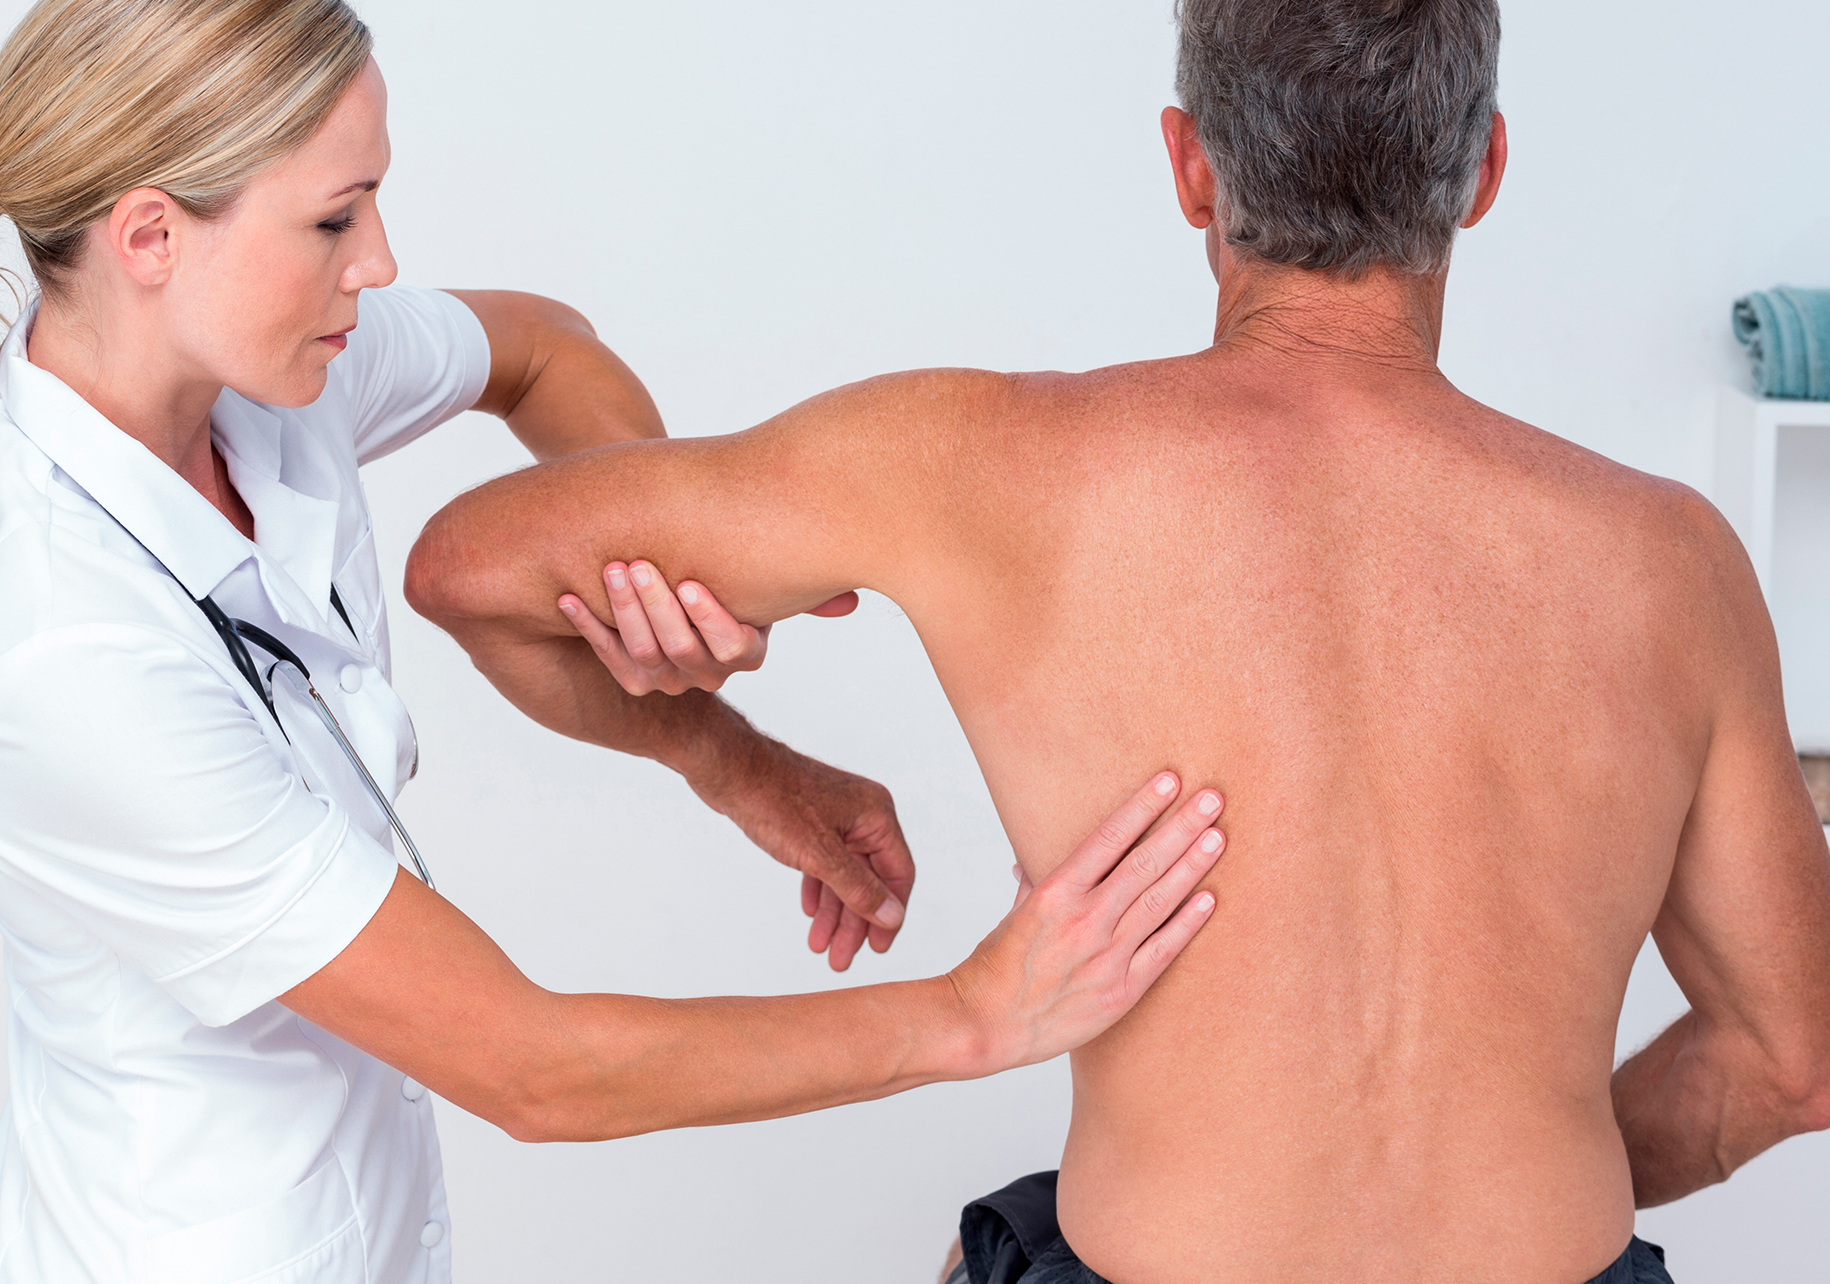 Now Enjoy Services Of Professional And Qualified Physiotherapists